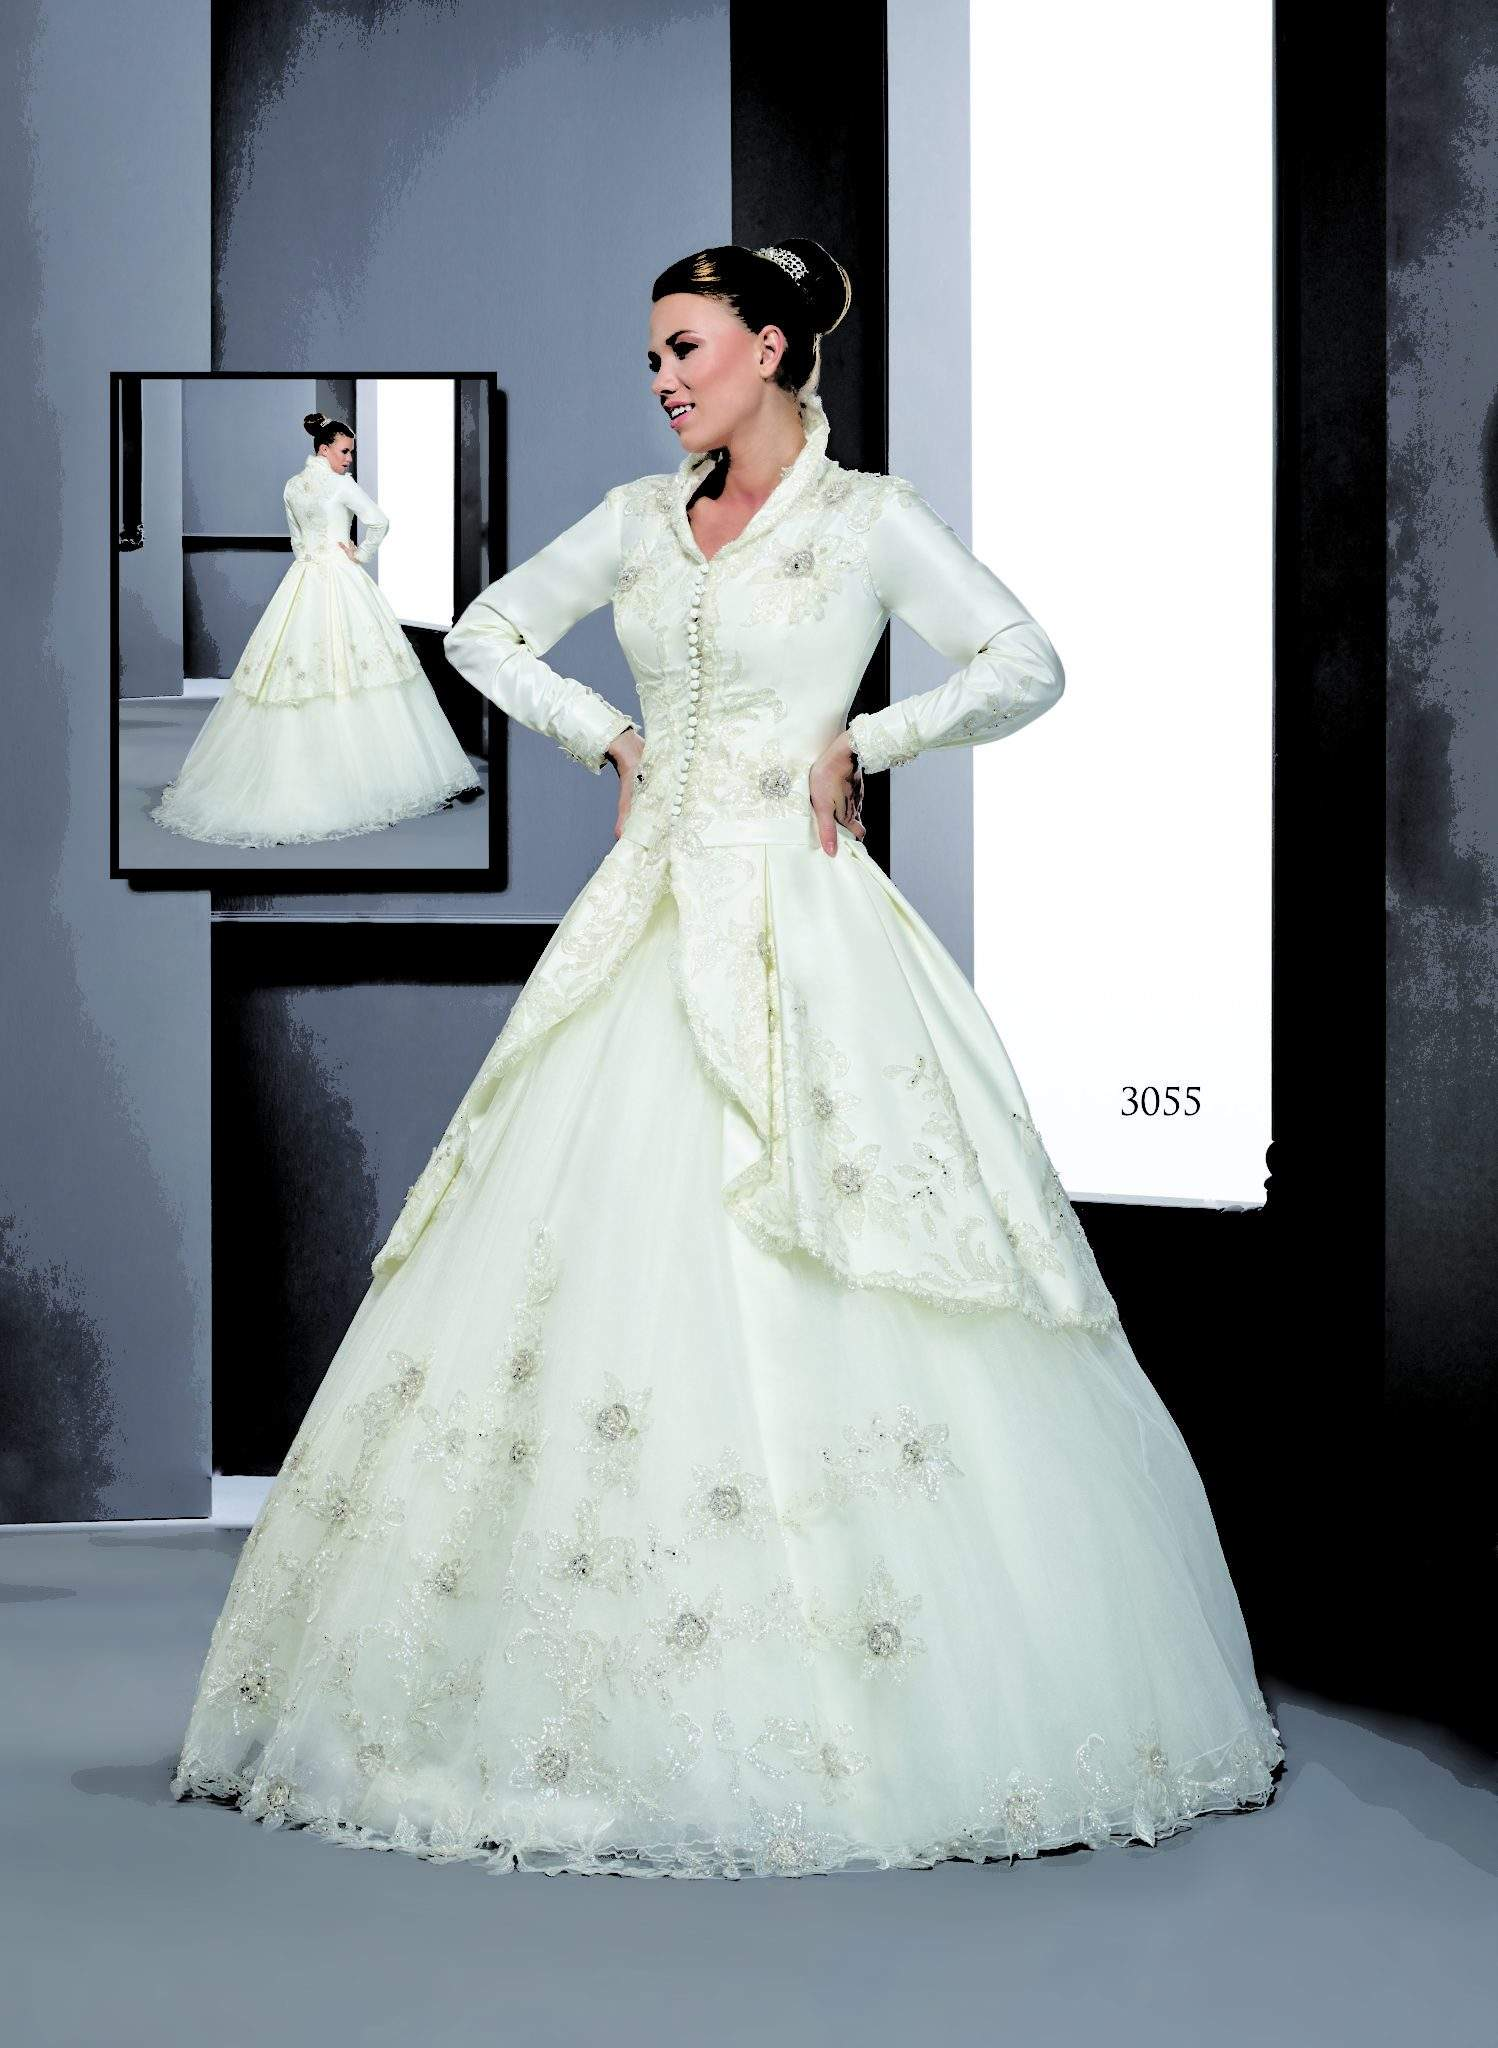 Long sleeve wedding dress coats darius cordell fashion ltd for Dress jackets for wedding